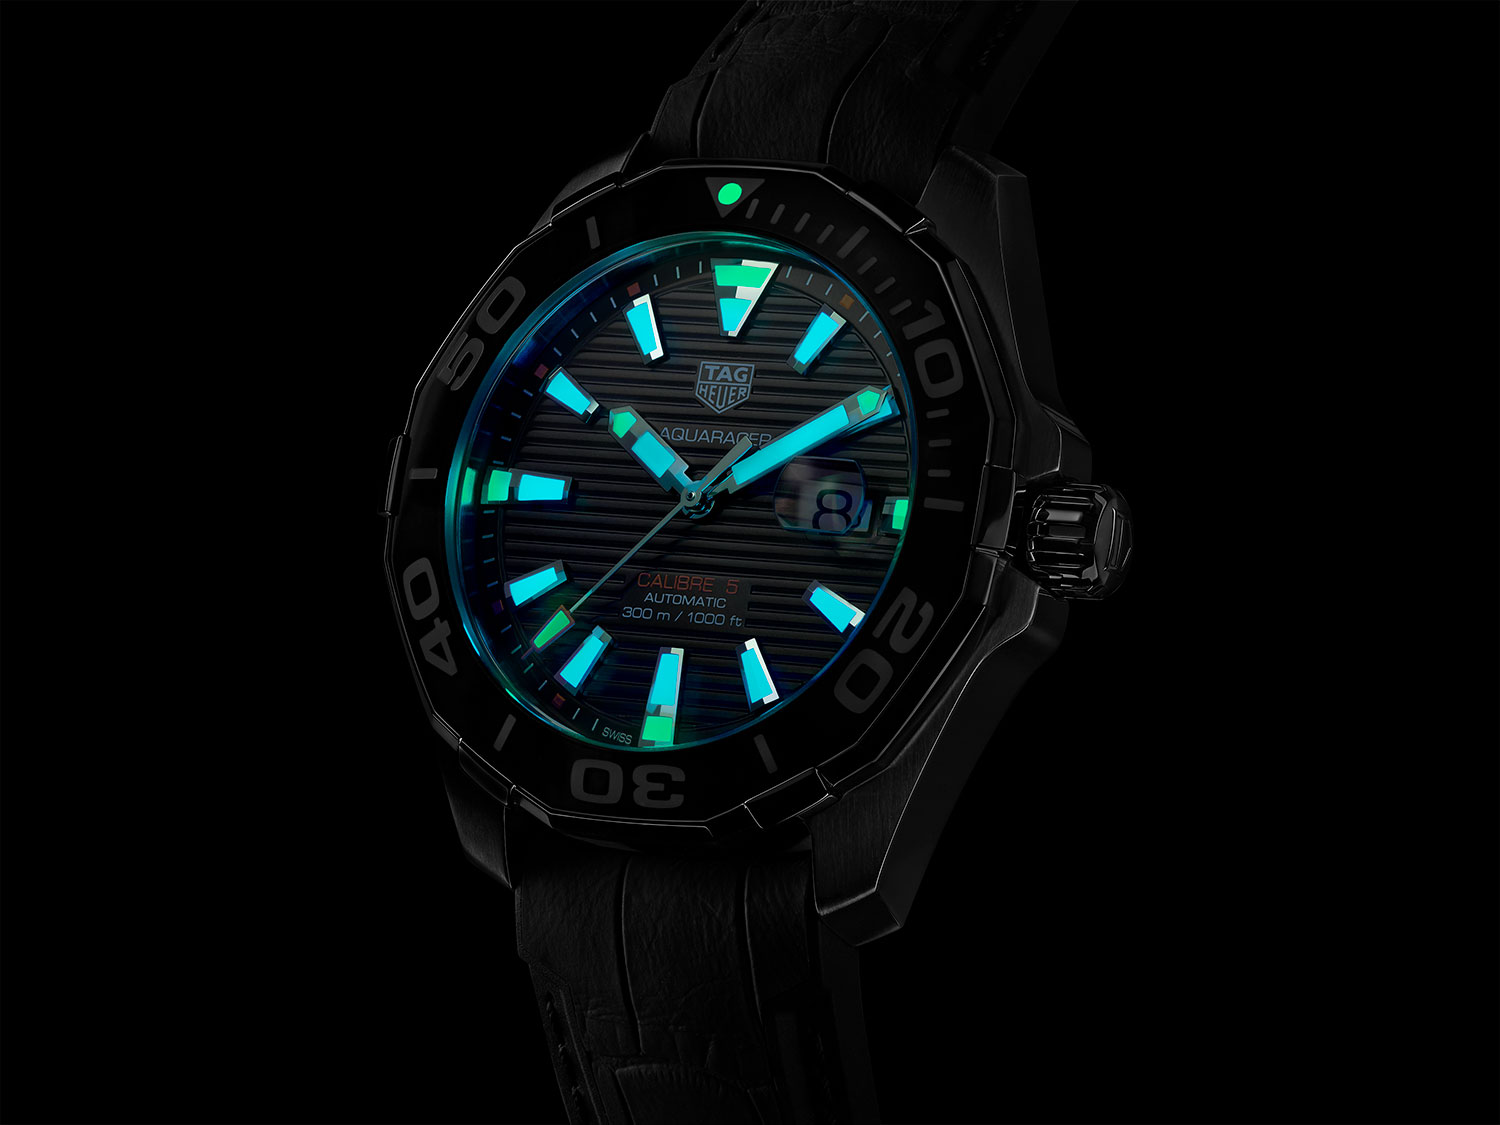 Tratamiento con Super-LumiNova del TAG Heuer Aquaracer Collection Carey